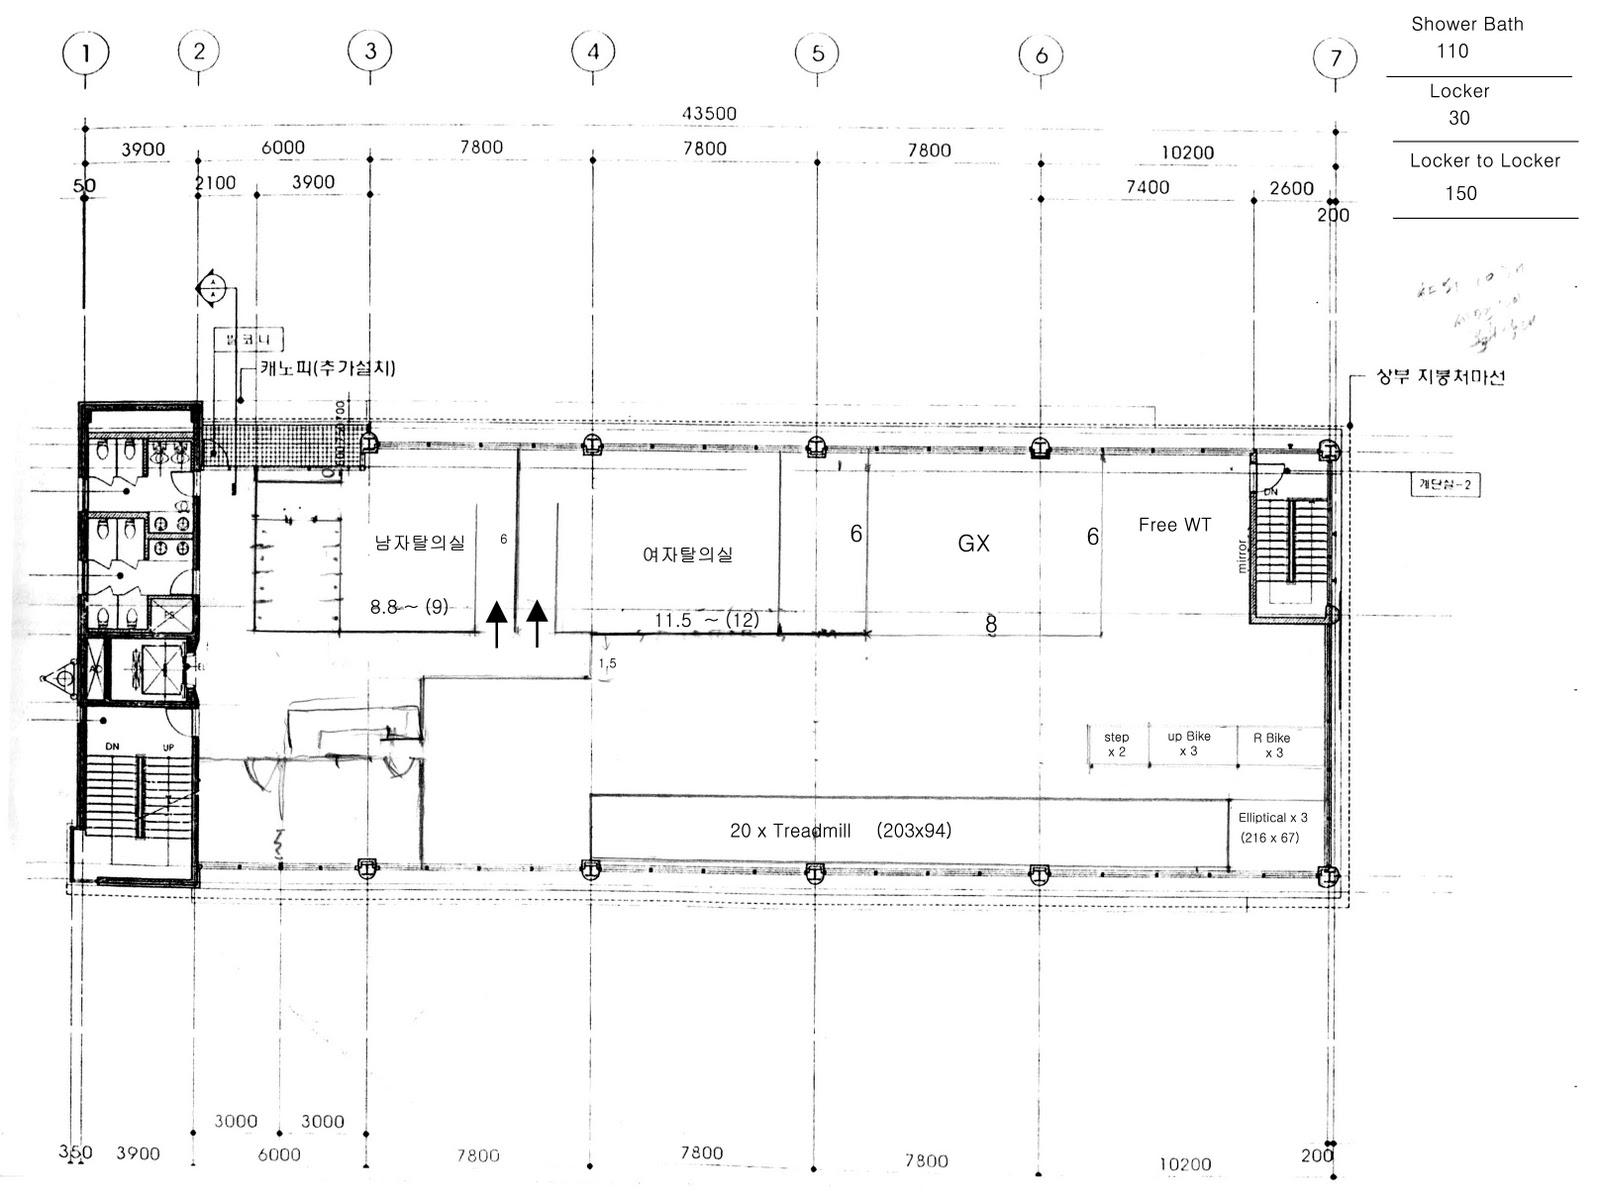 Simple Fitness Gym Floor Plan Images